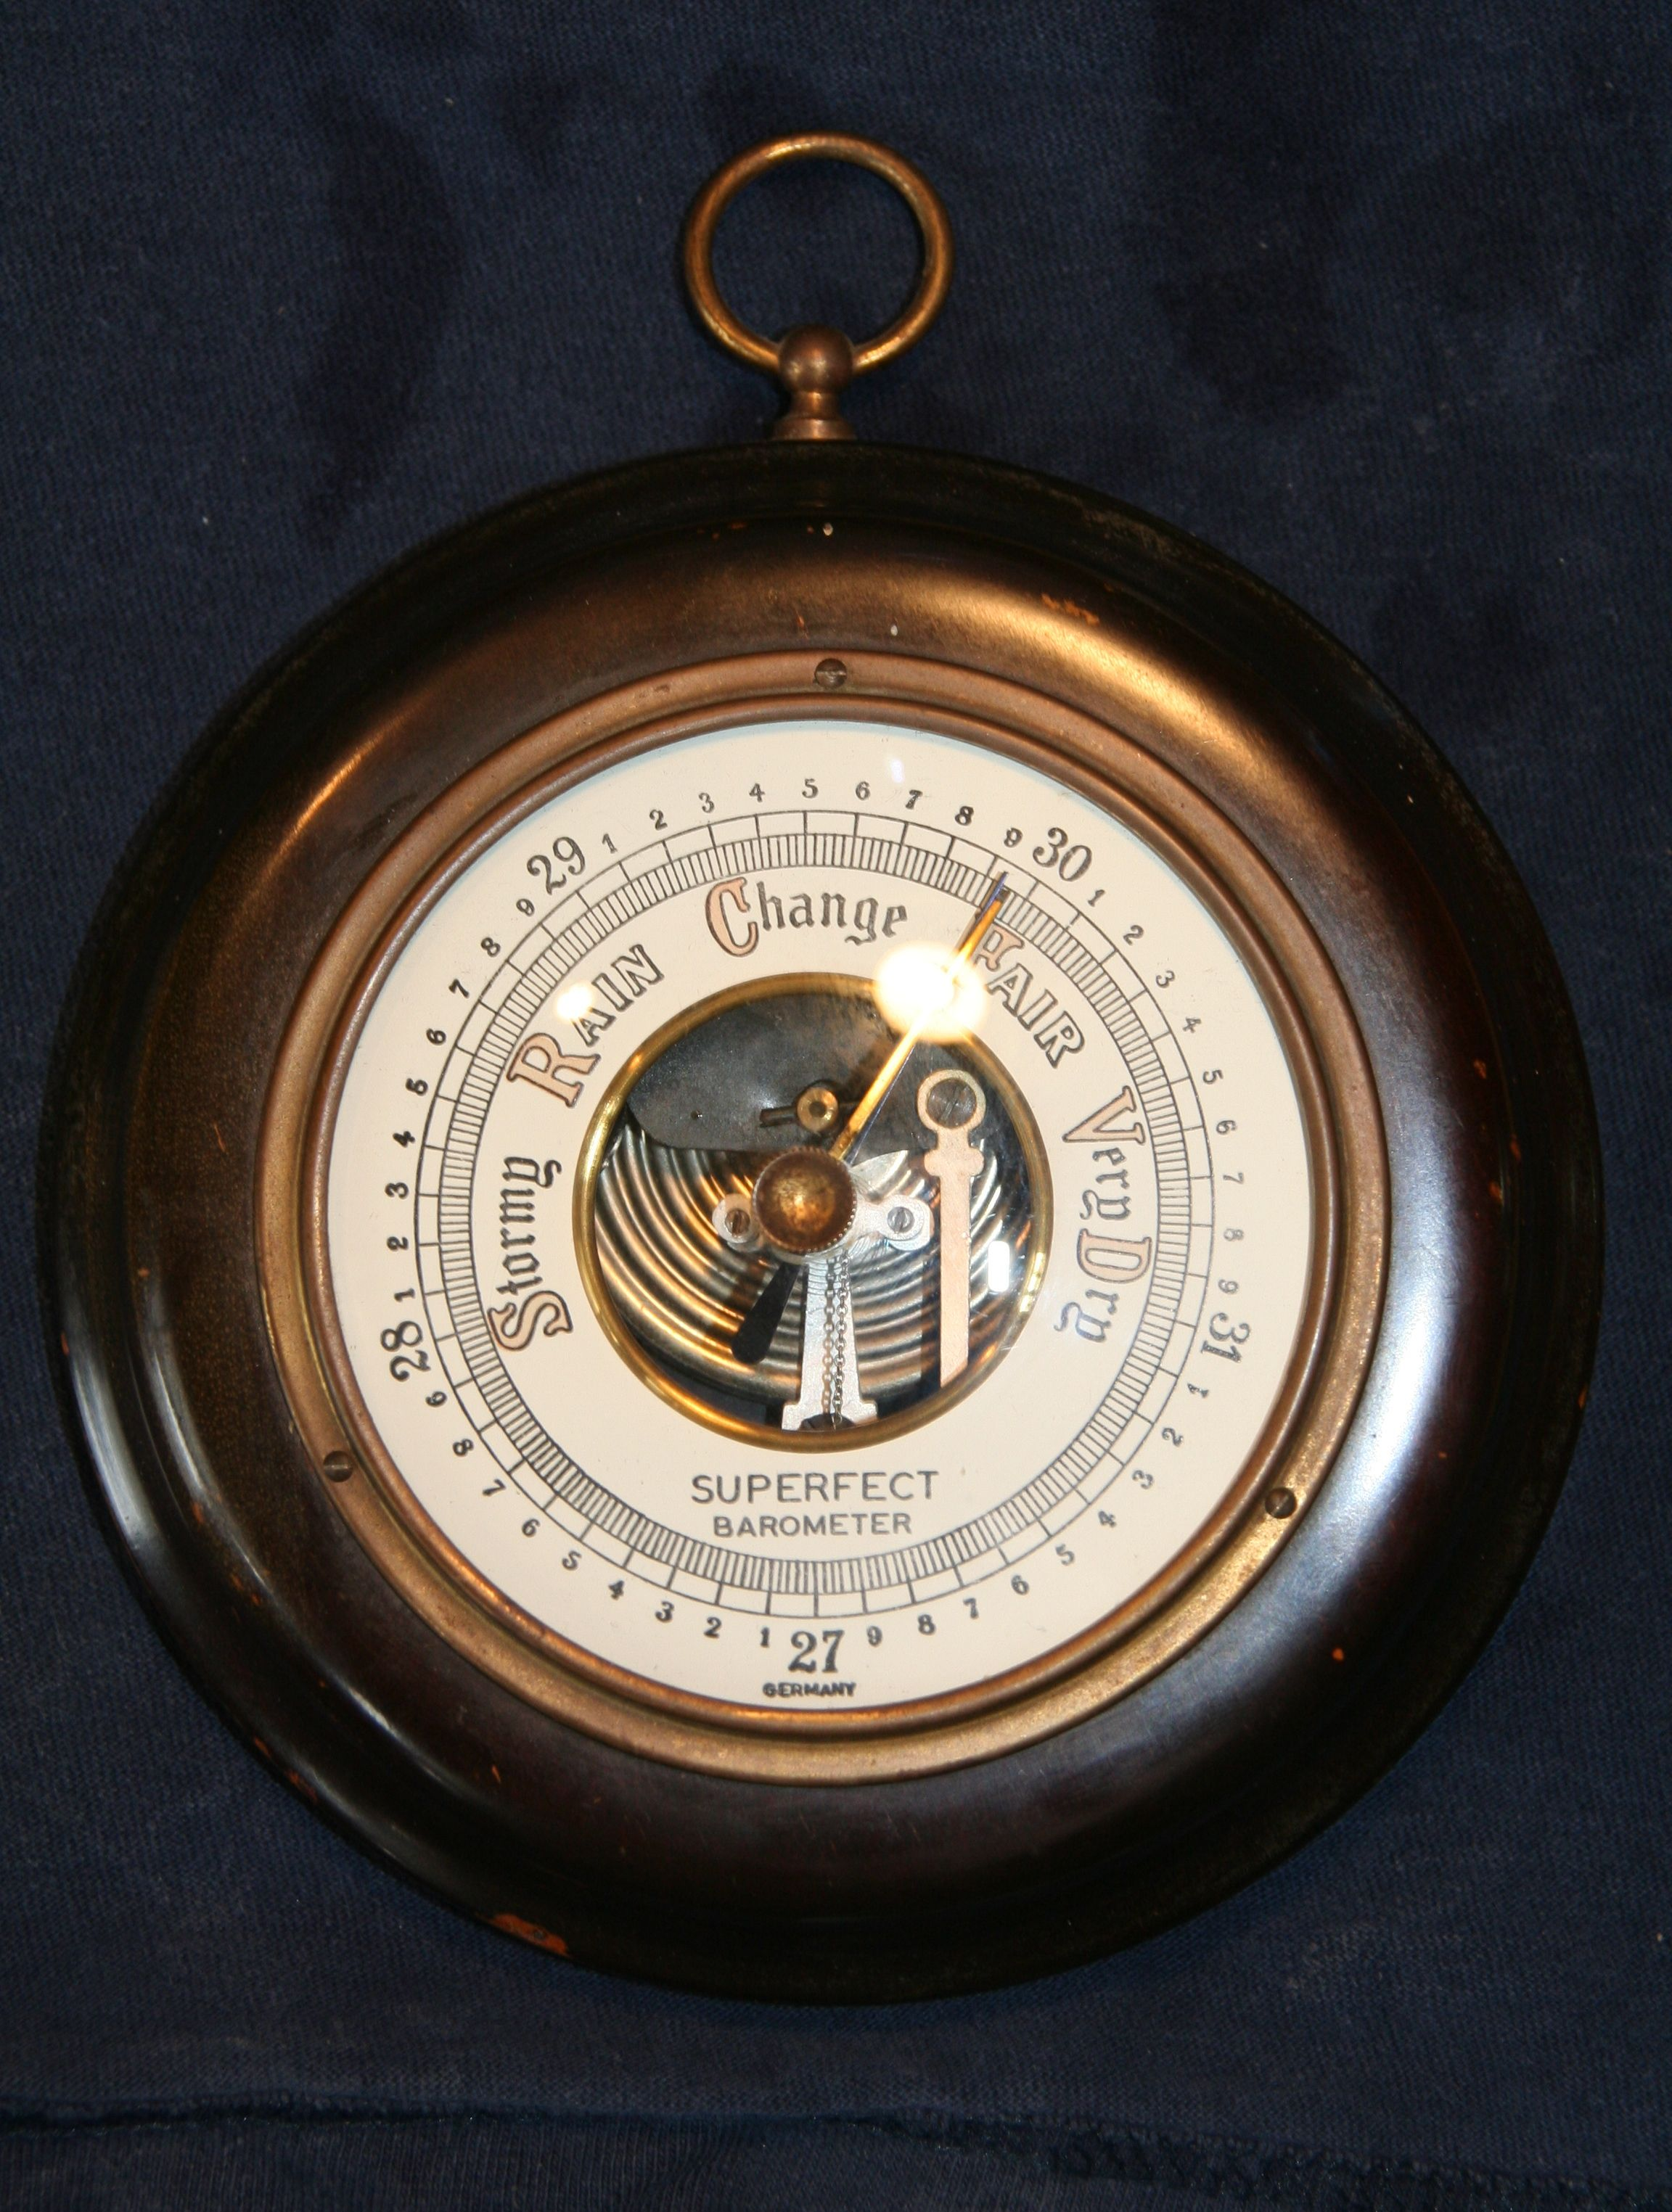 The Superfect Barometer - Made In Germany